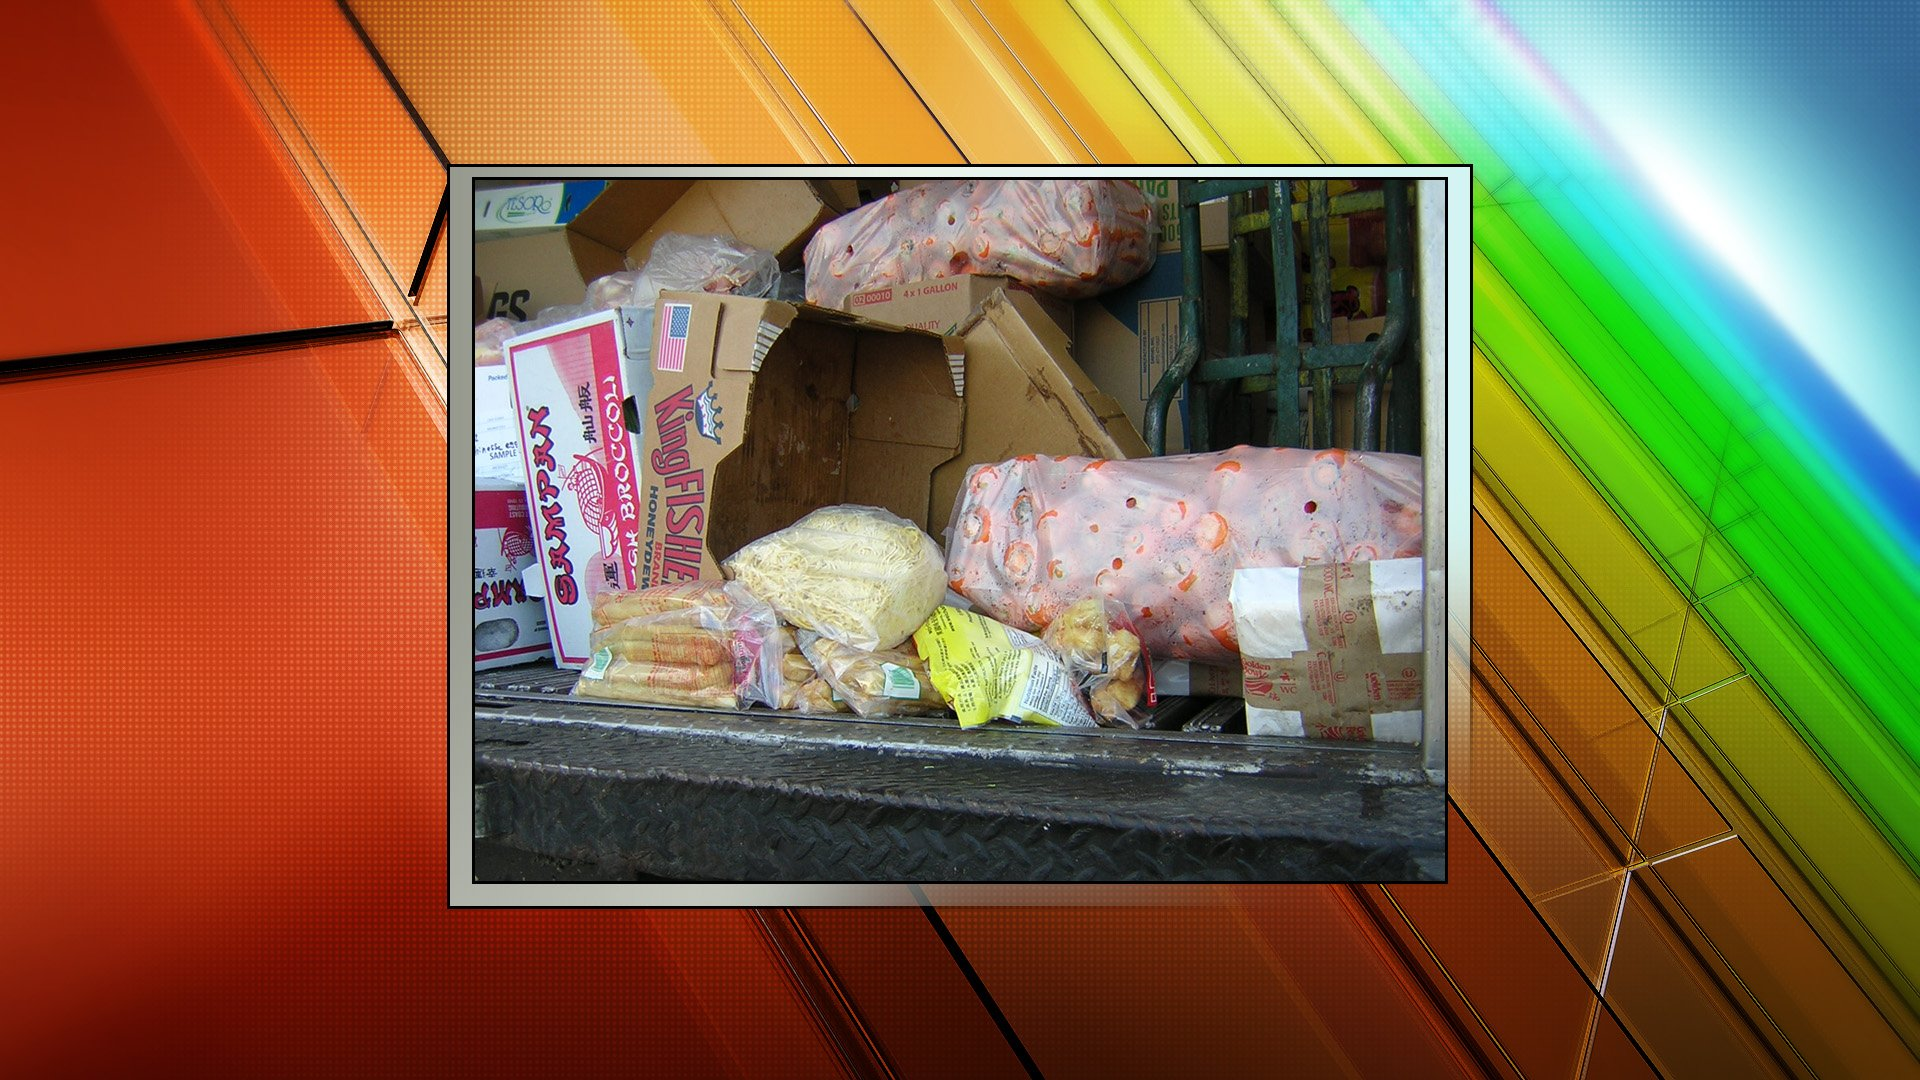 The contaminated food that was disposed of at a landfill.